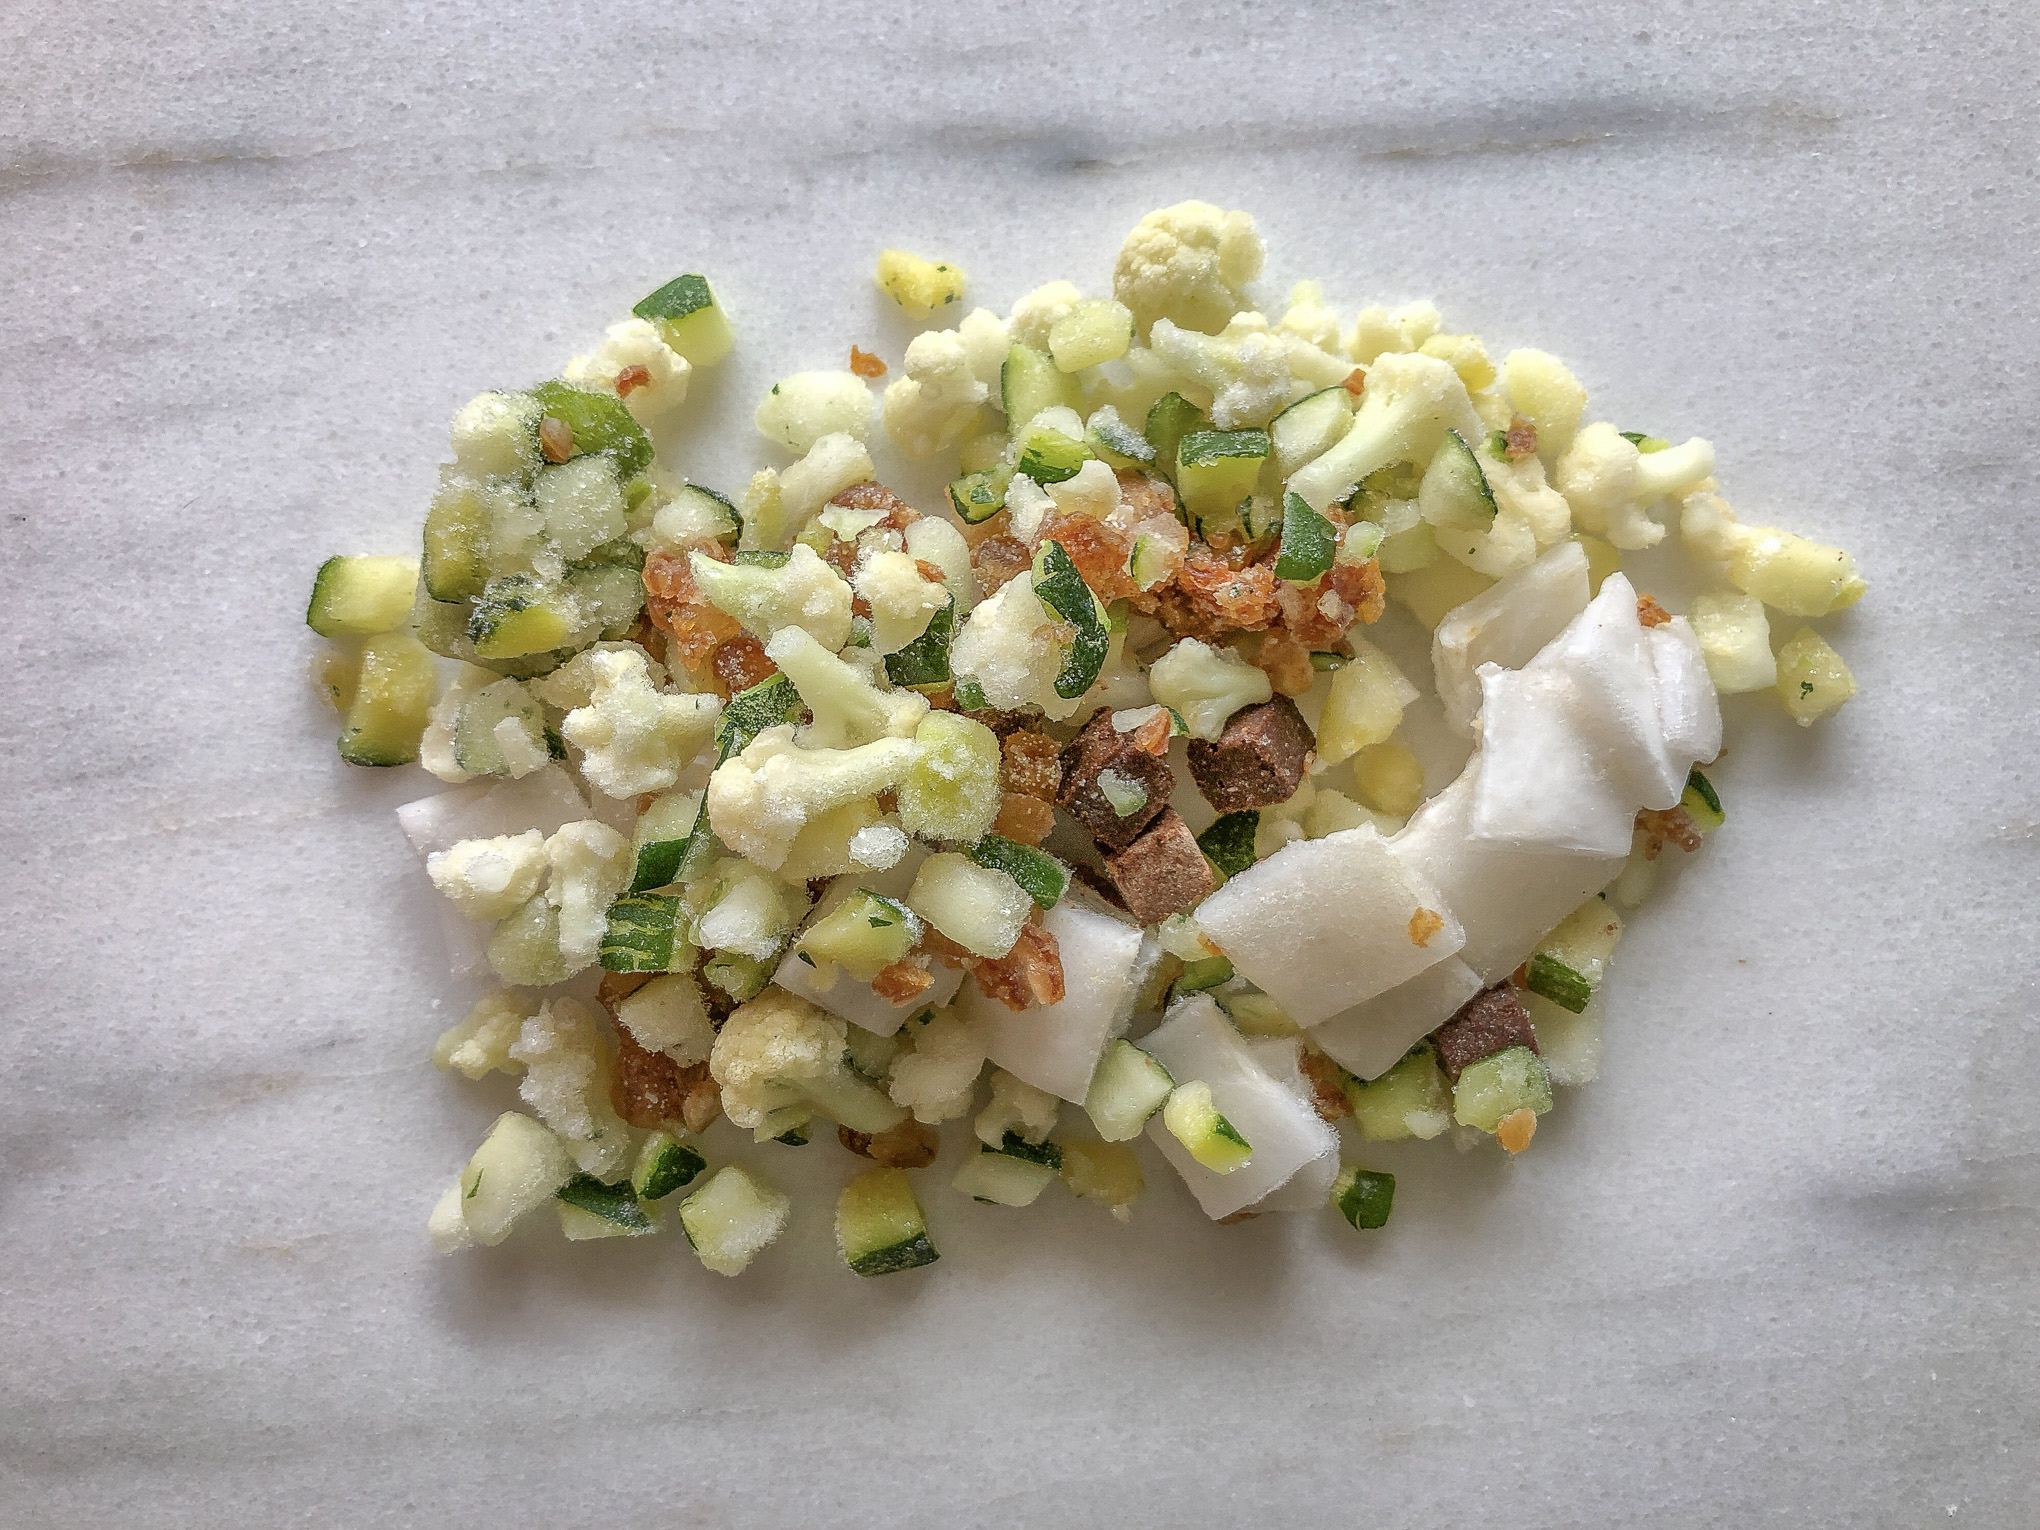 Cauliflower, coconut, zucchini and other frozen smoothie ingredients on marble